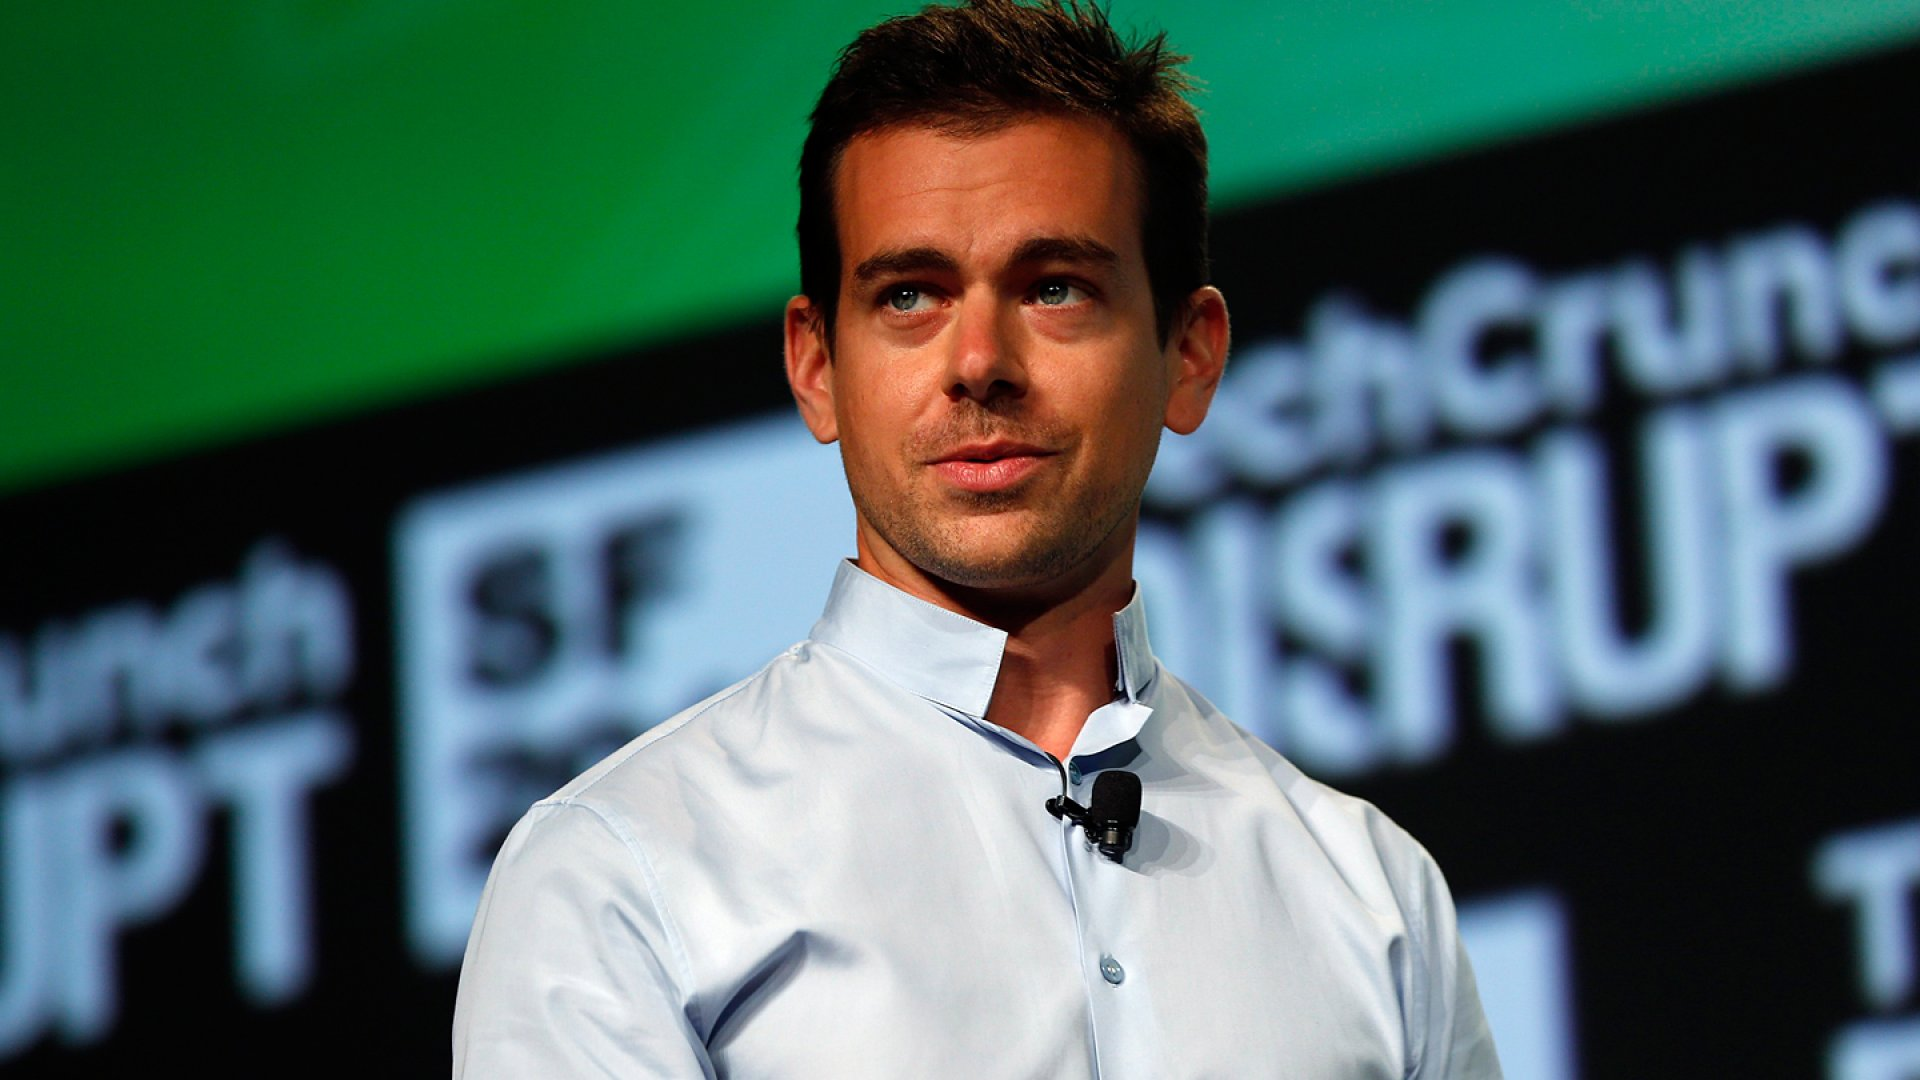 Jack Dorsey speaks onstage during Day One of TechCrunch Disrupt SF 2012.